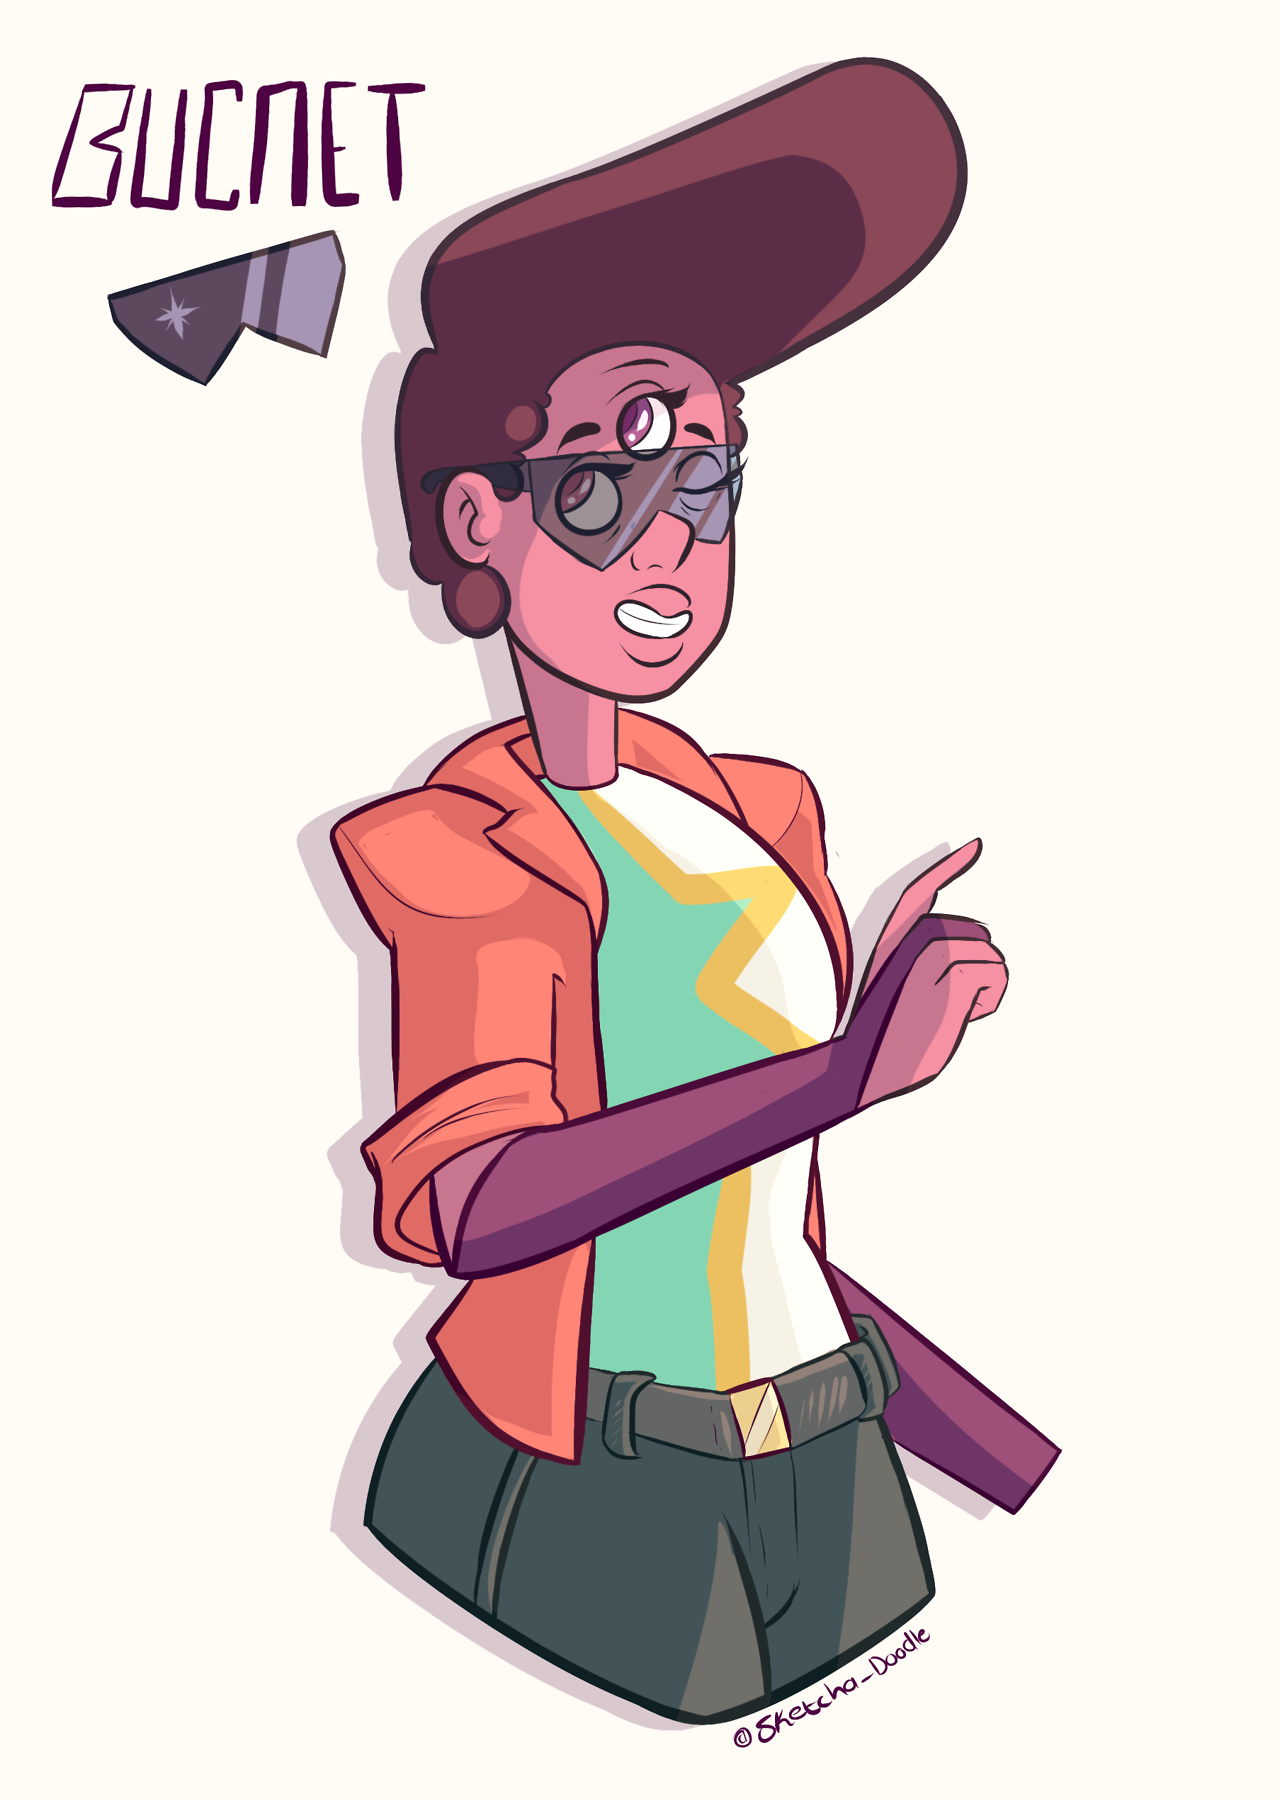 Bucnet! A fusion between Buck Dewey and Garnet. This is part 1 of a 6 part Human Gem Fusions series this week. Be sure to keep an eye out!